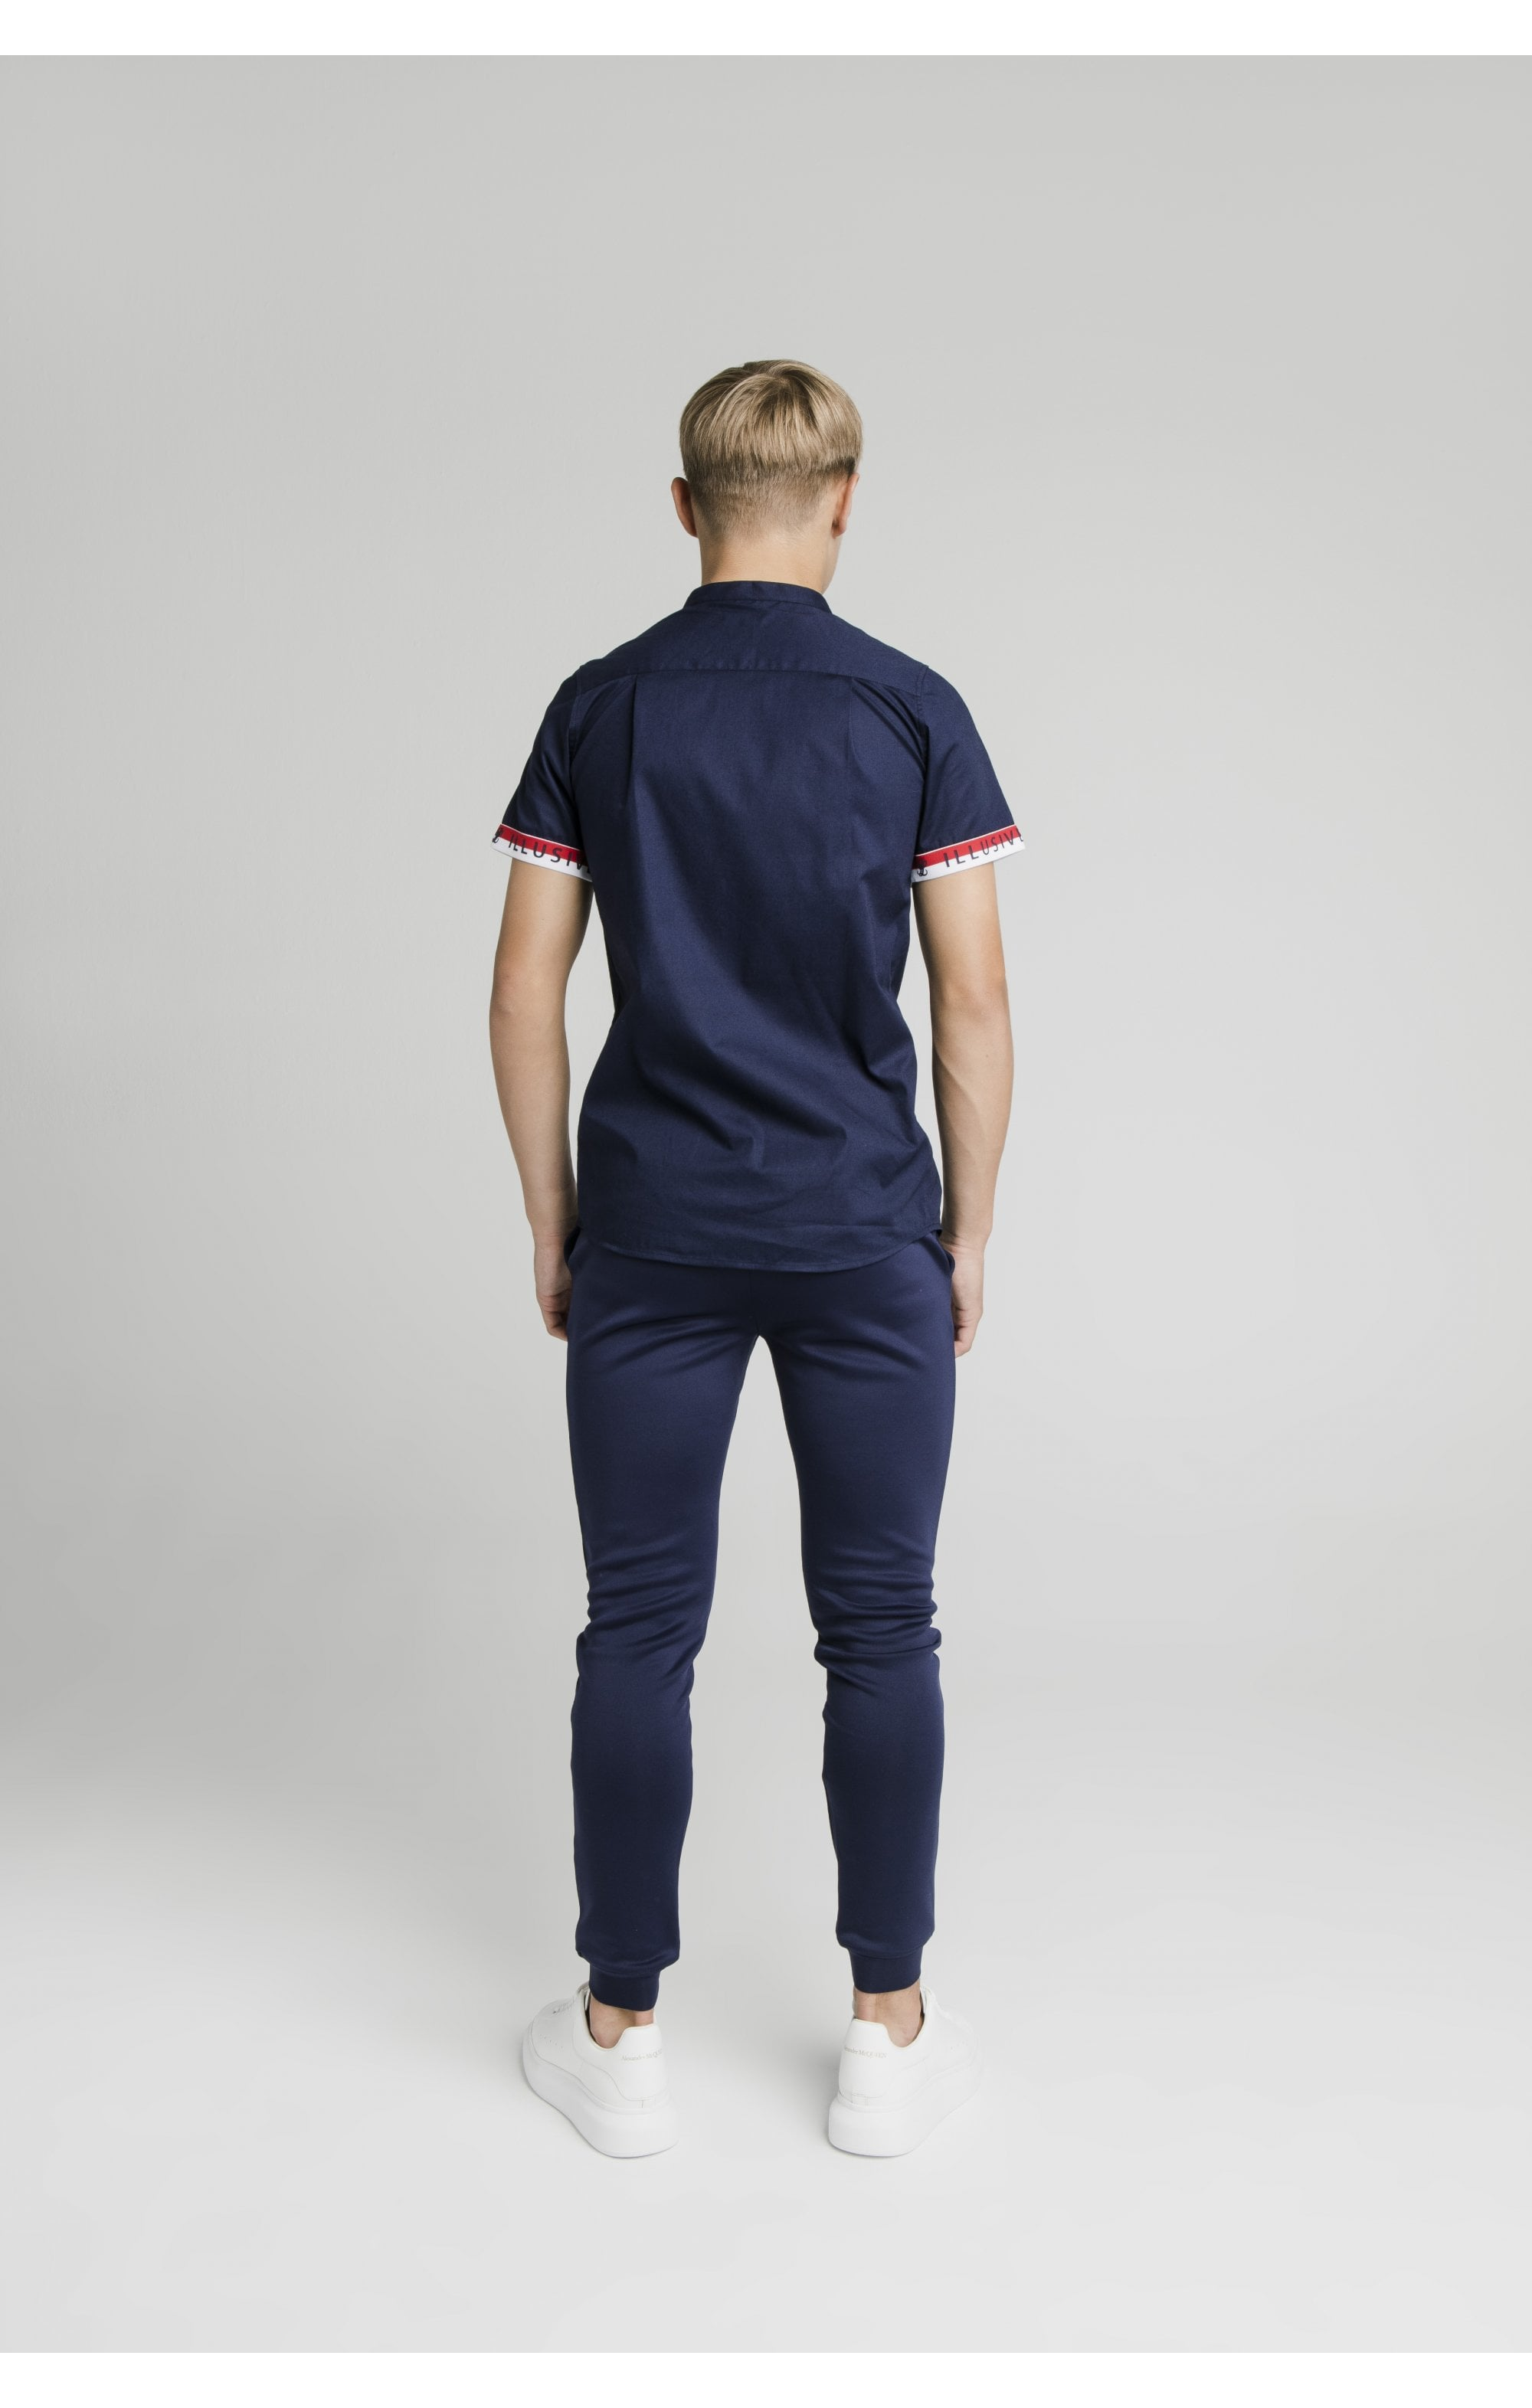 Illusive London S/S Tech Shirt - Navy (4)